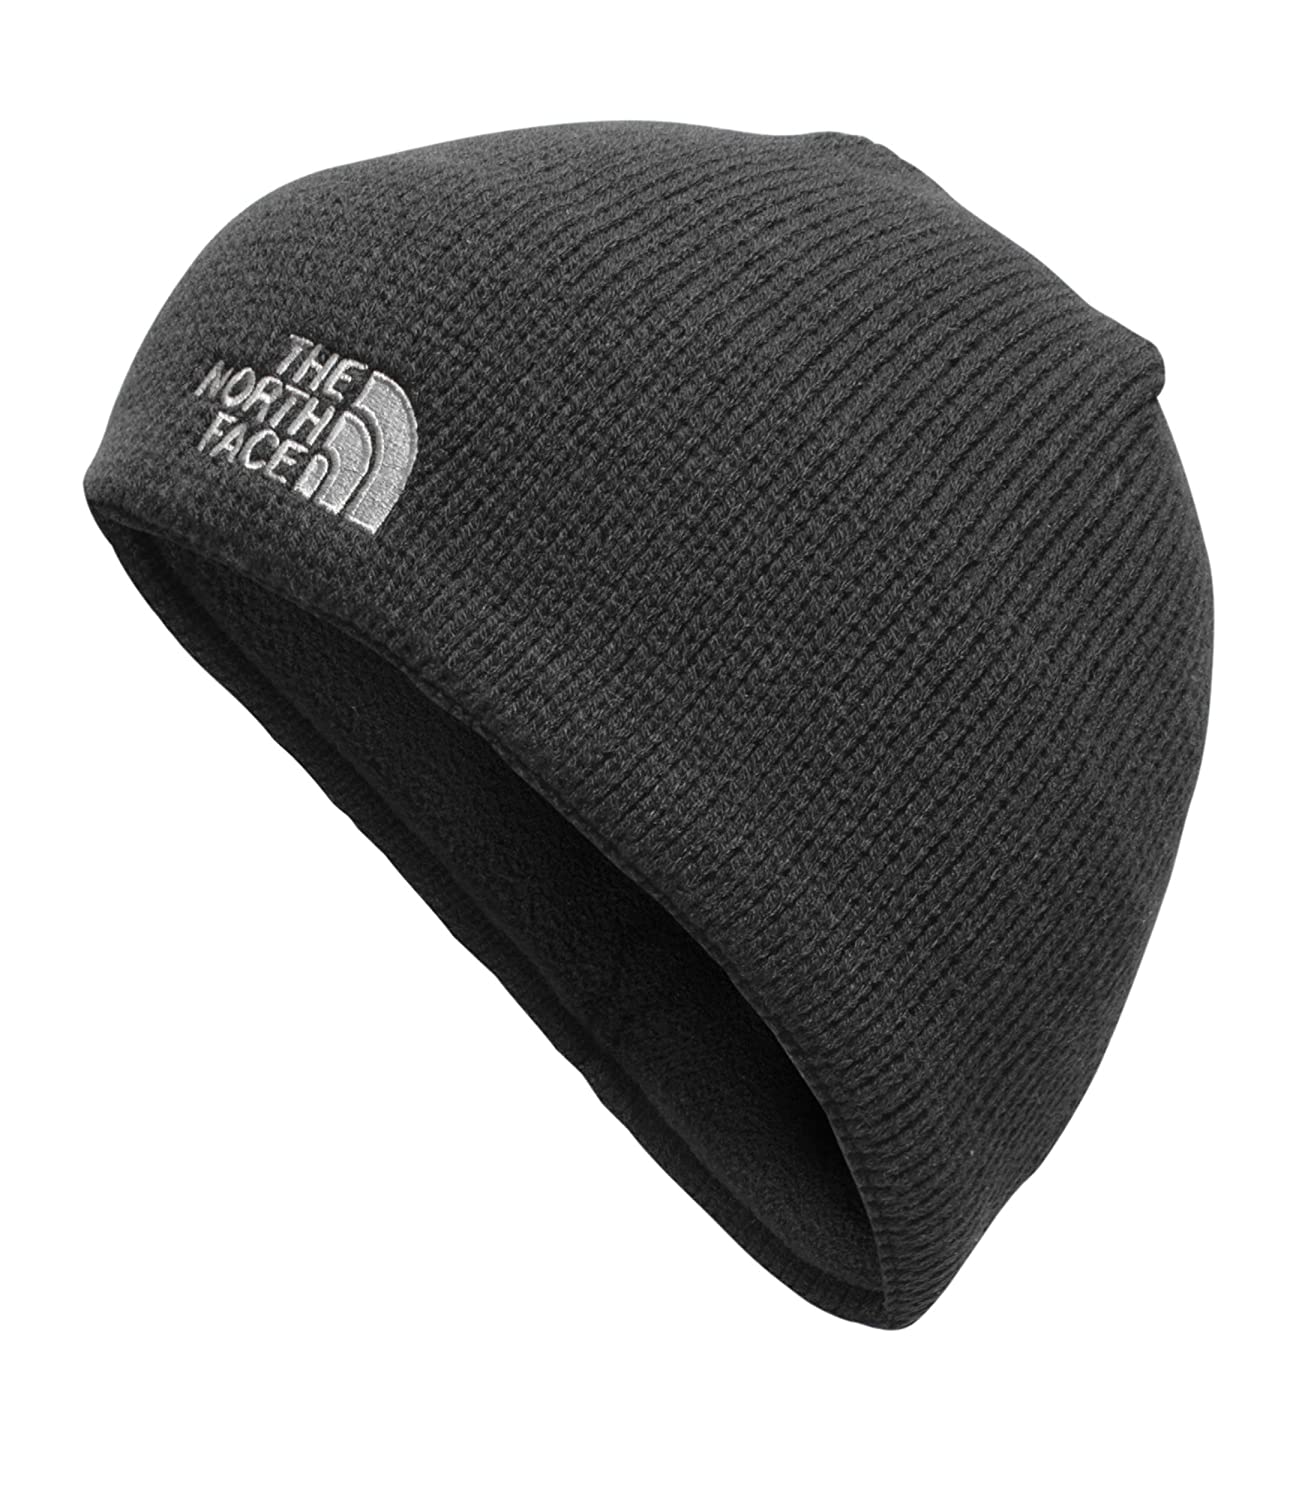 496d3087397df Amazon.com  The North Face Men s Bones Beanie  Clothing